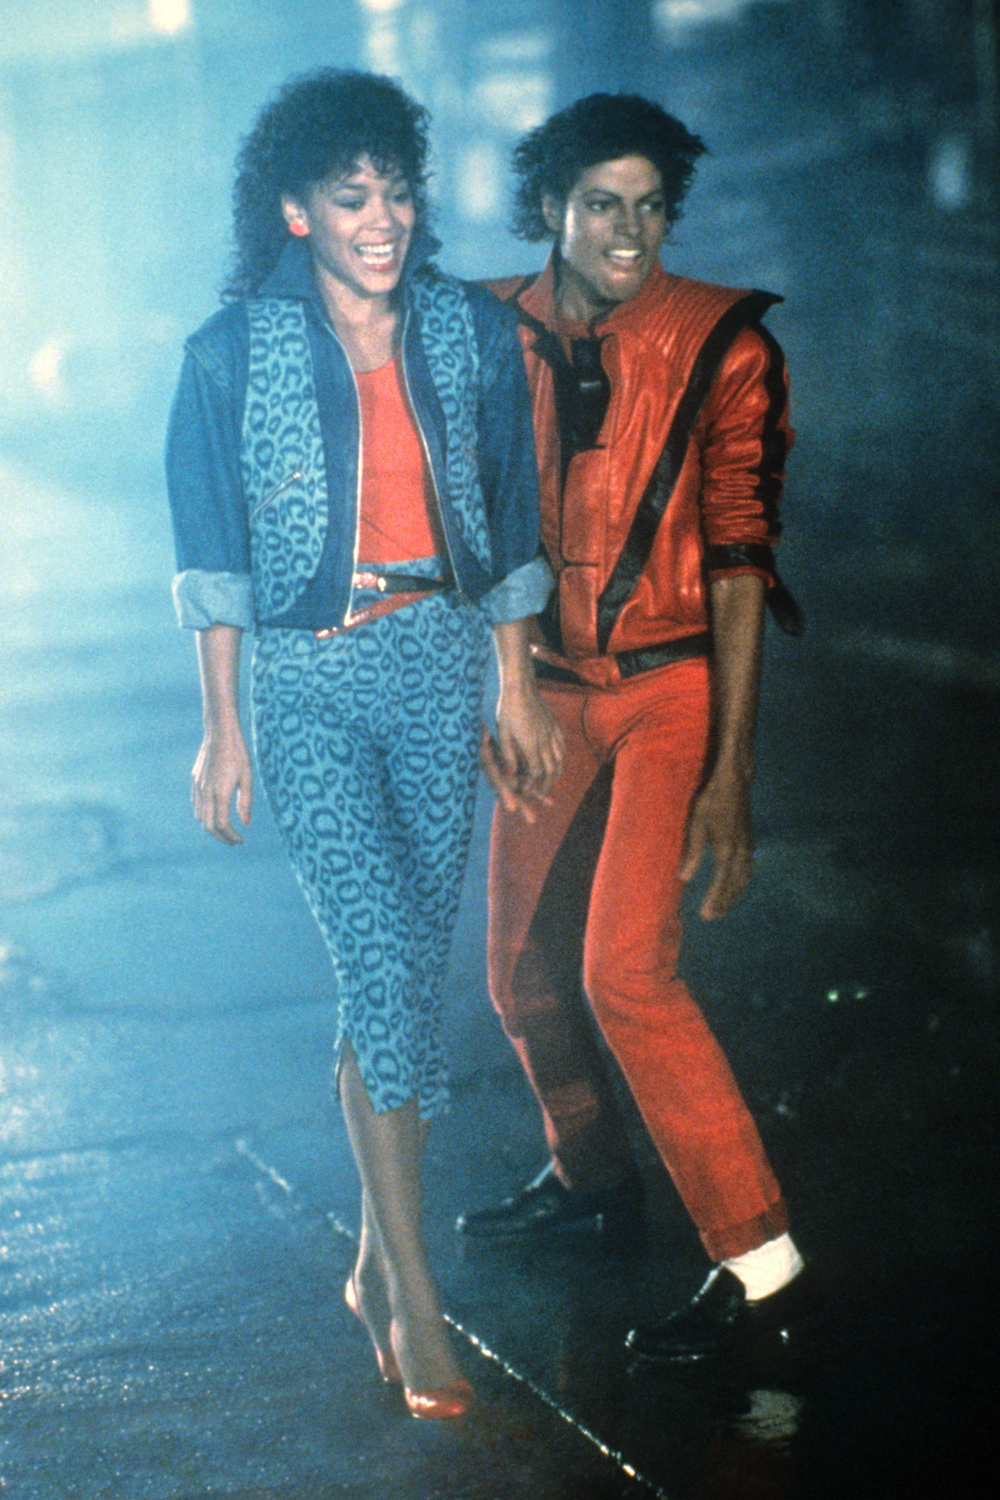 Michael Jackson in Thriller eighties fashion